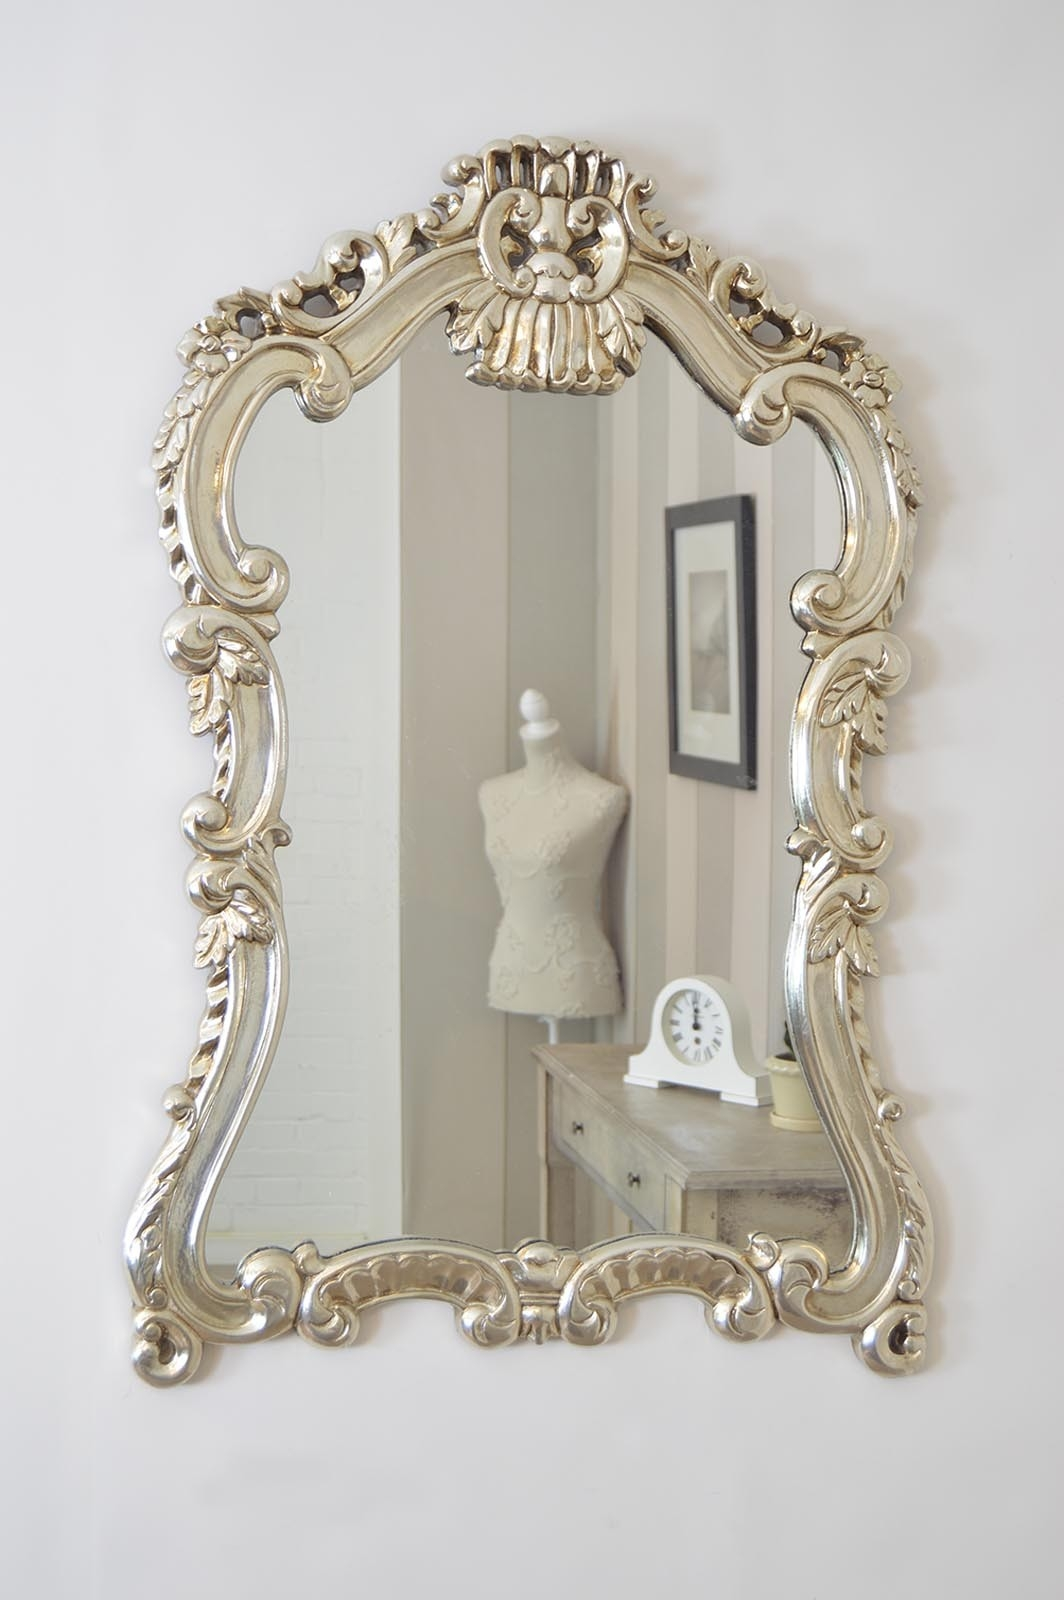 3ft6 X 2ft8 115cm X 82cm Large Silver Baroque Style Ornate Big In Ornate Silver Mirrors (View 13 of 15)